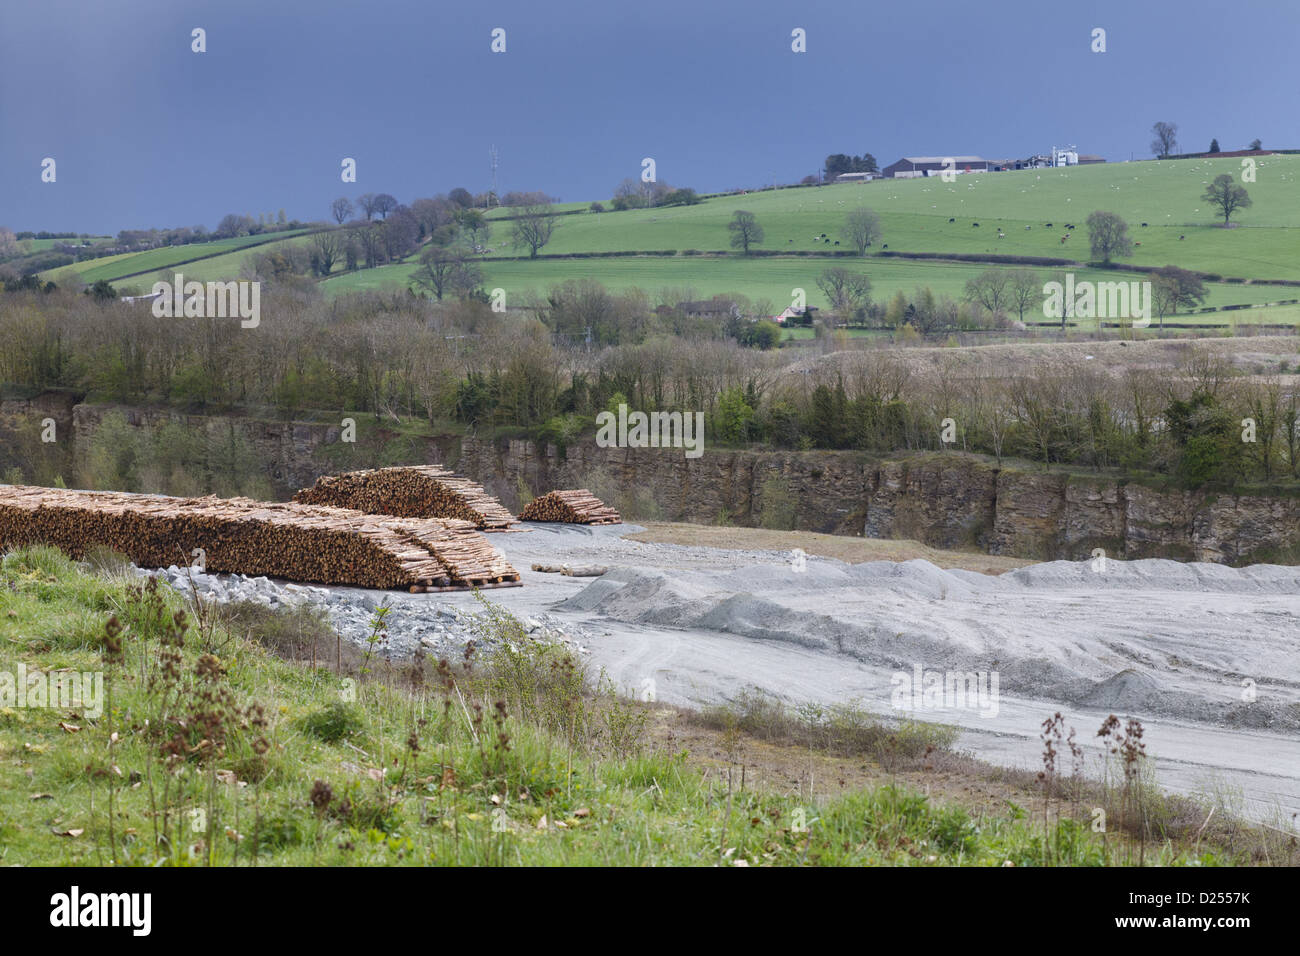 Limestone quarry and stack of felled timber, Lea Quarry South, Wenlock Edge, Shropshire, England, April - Stock Image